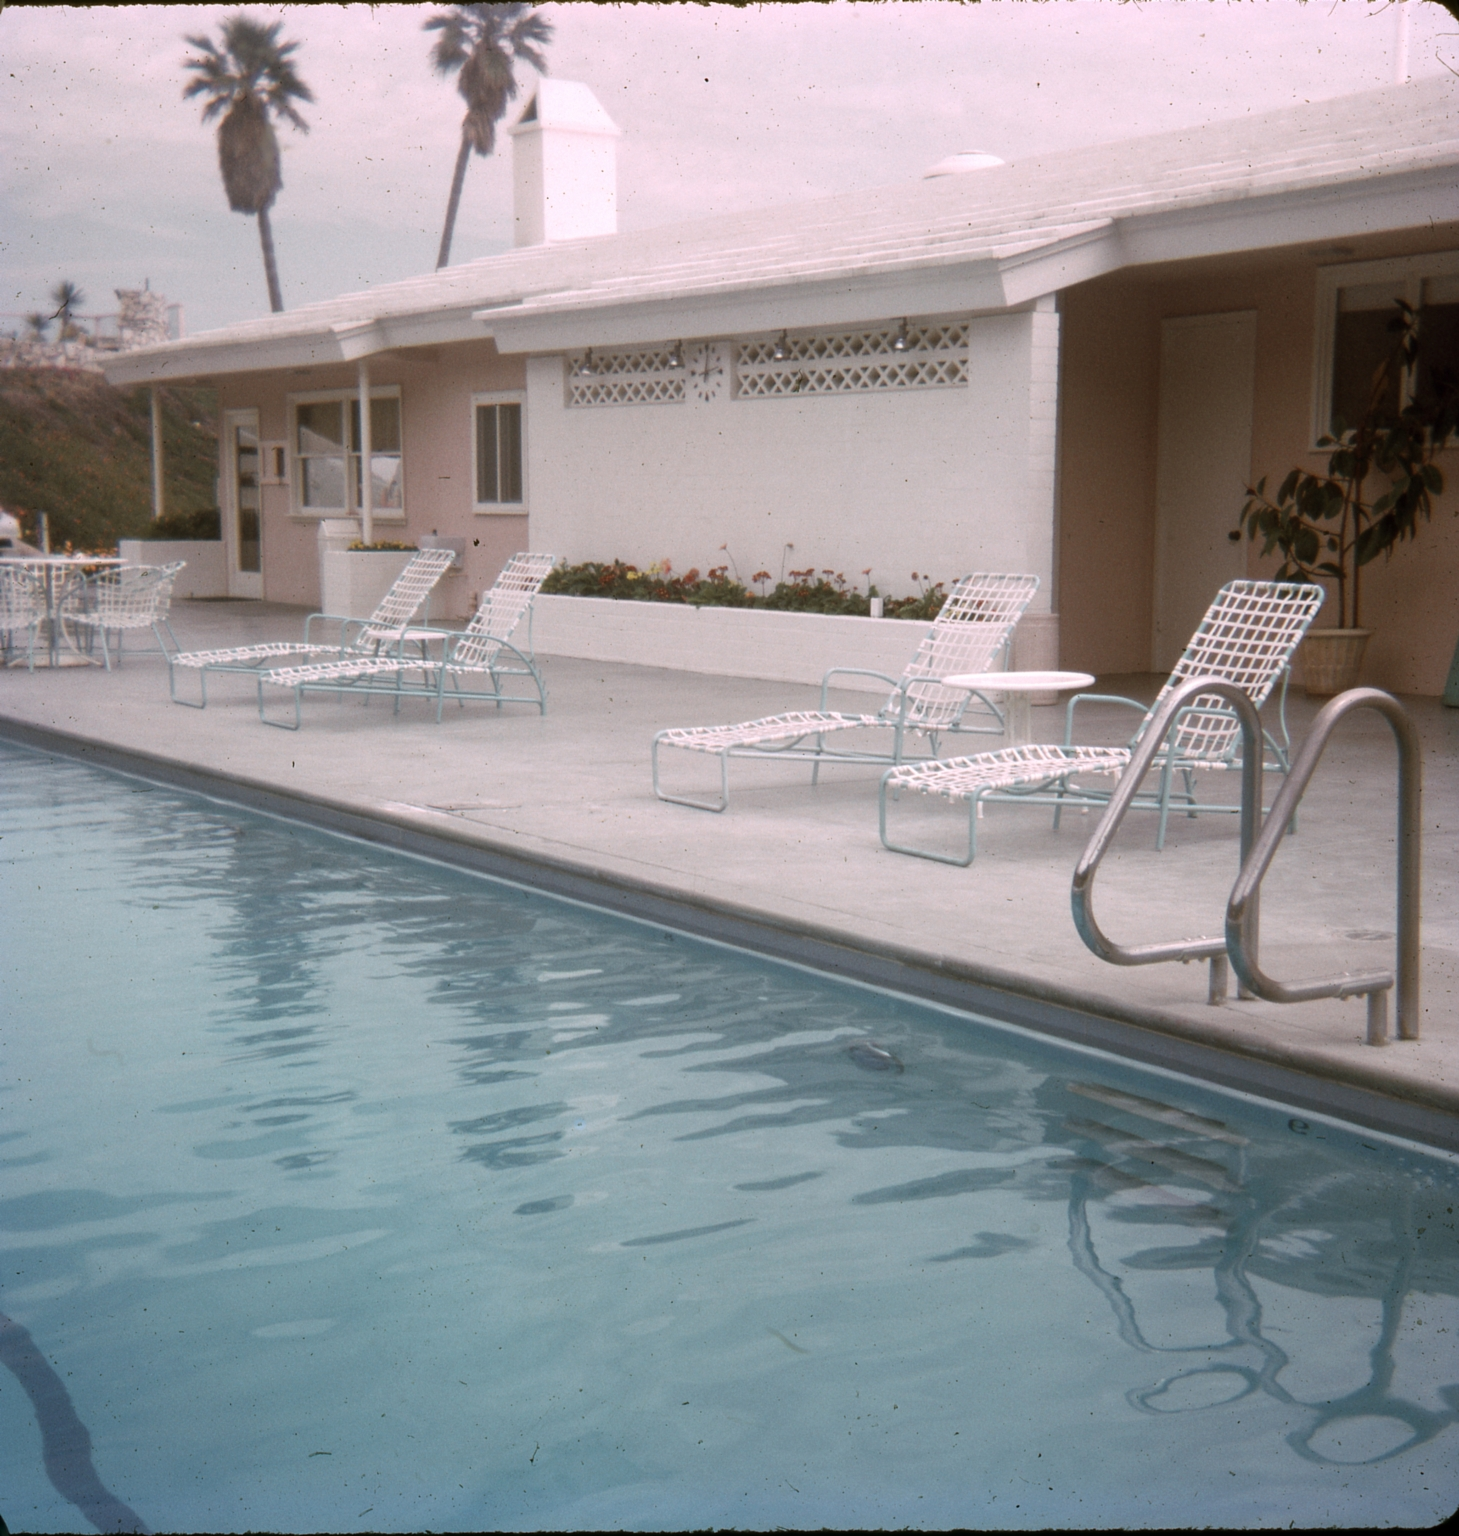 The swimming pool at the Dana Strand Club.